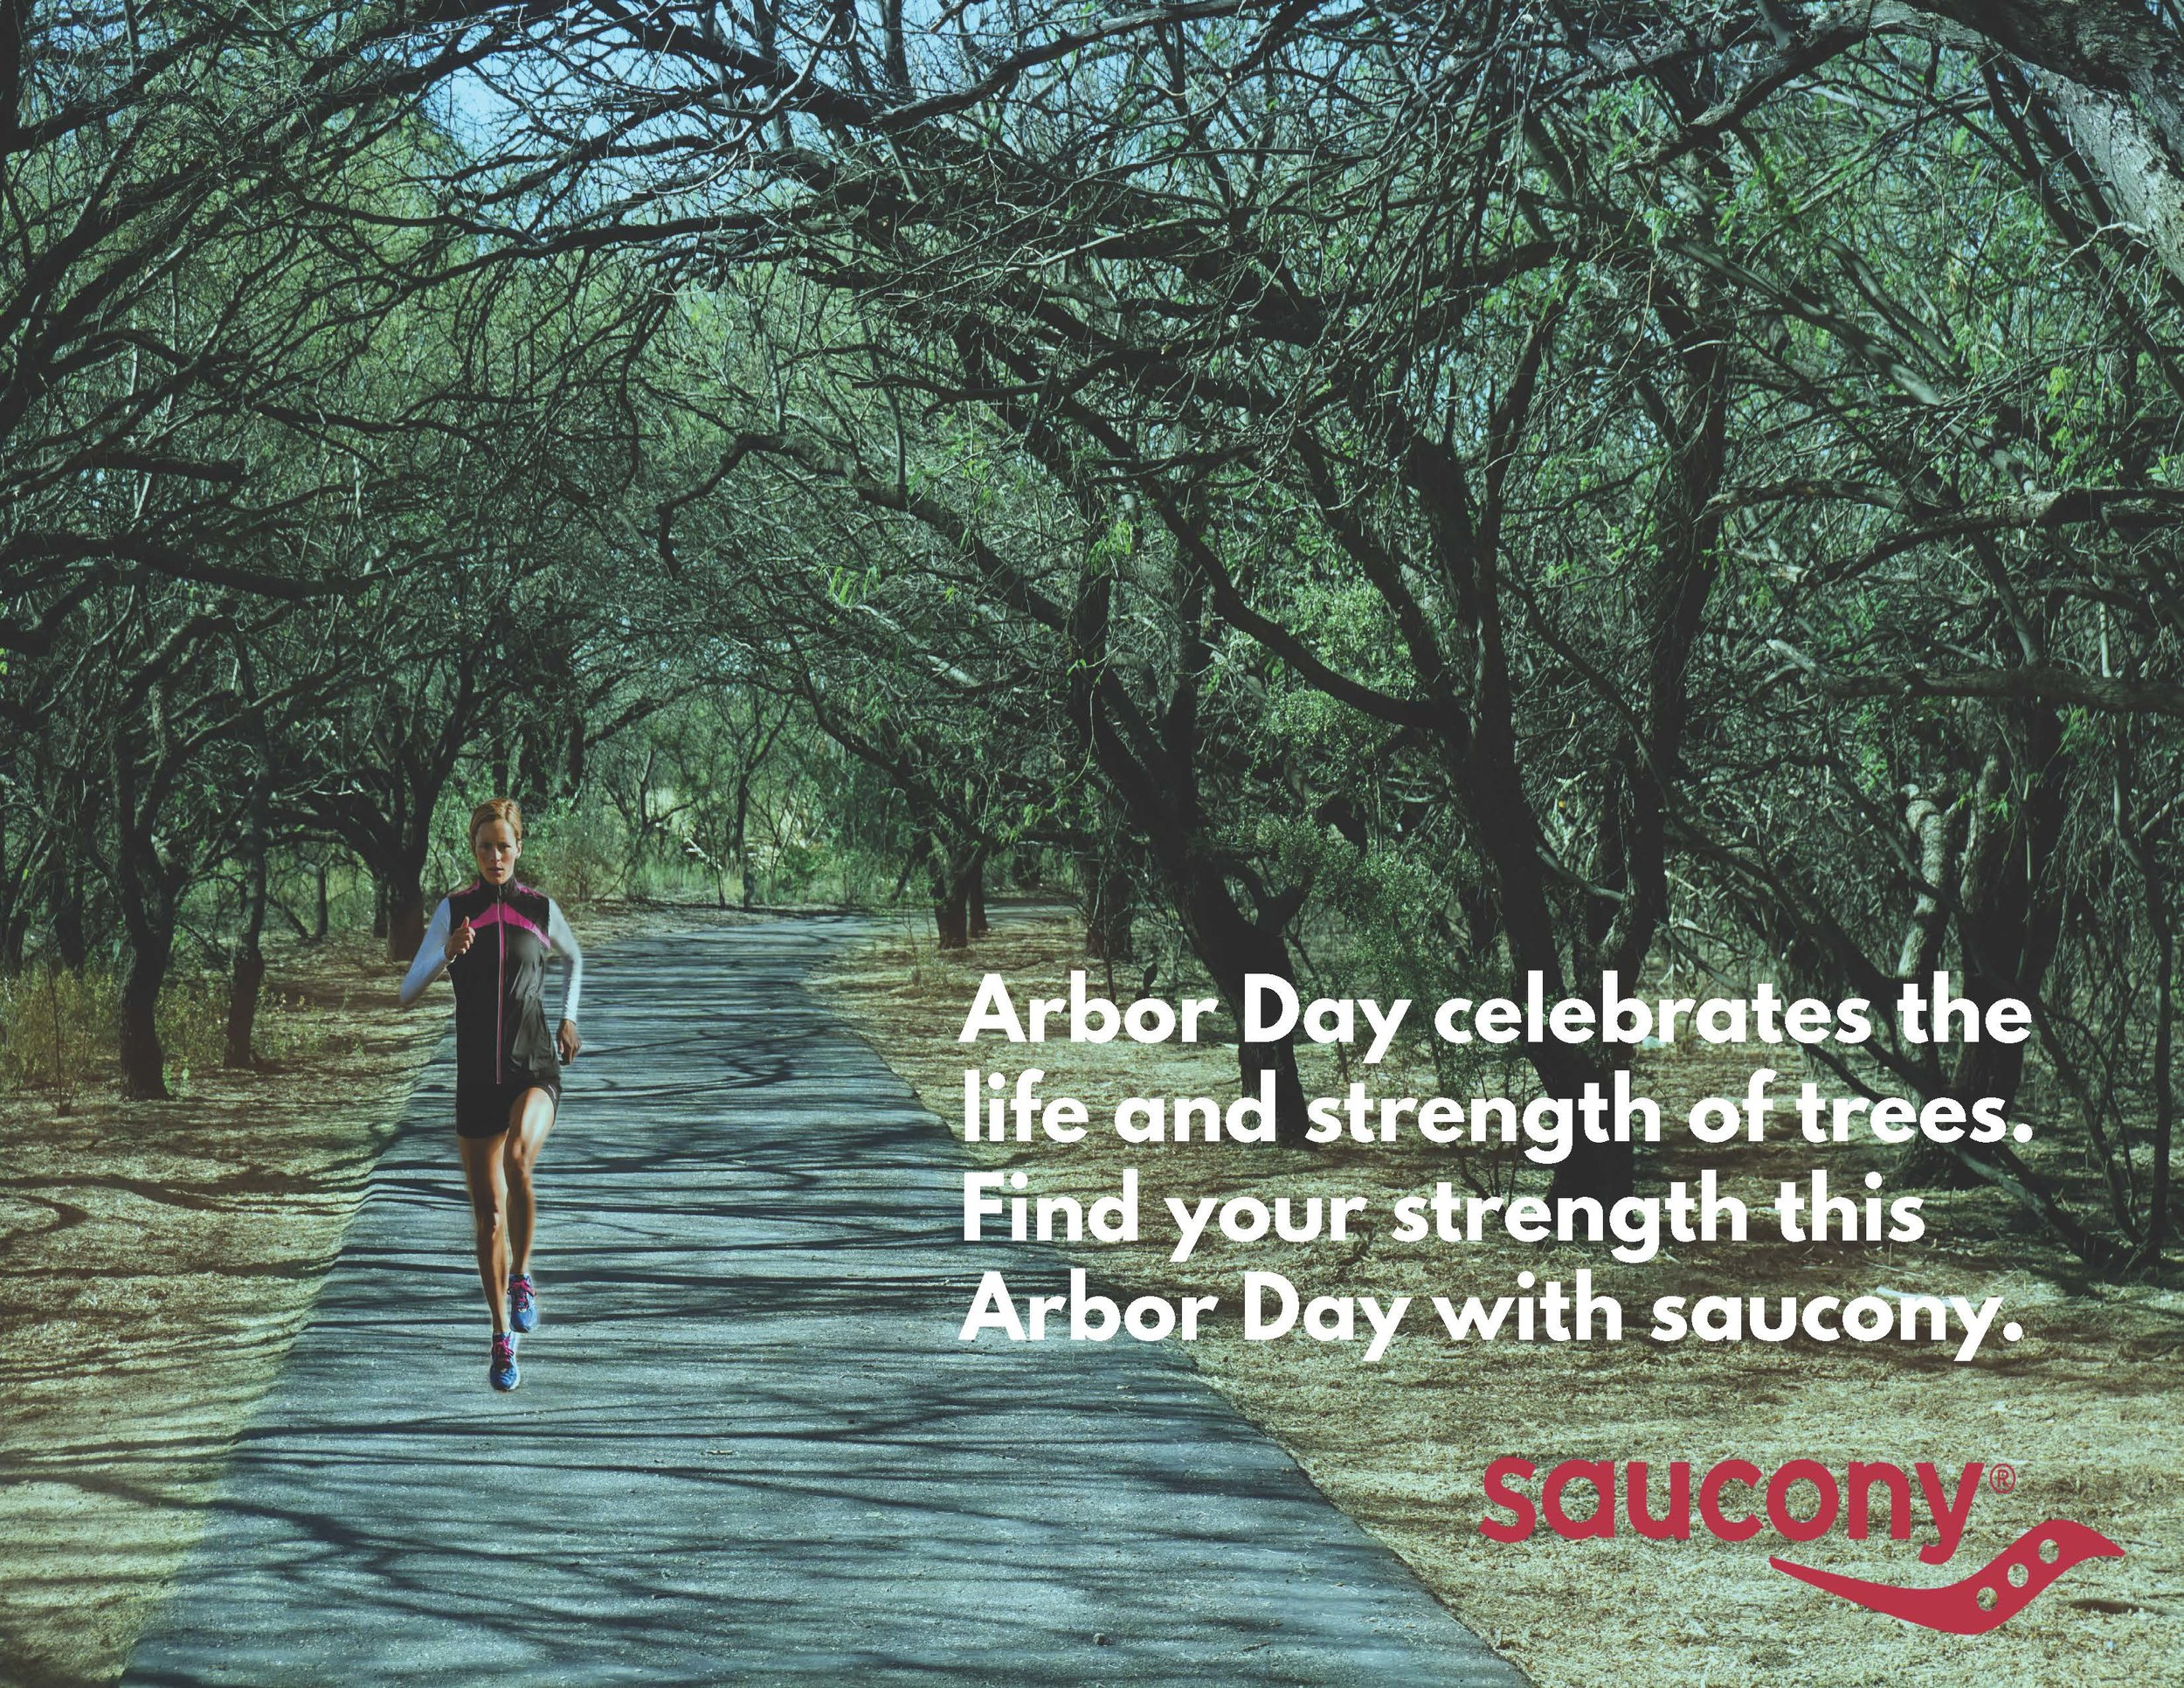 Mock Arbor Day/saucony advertisement I created in school.